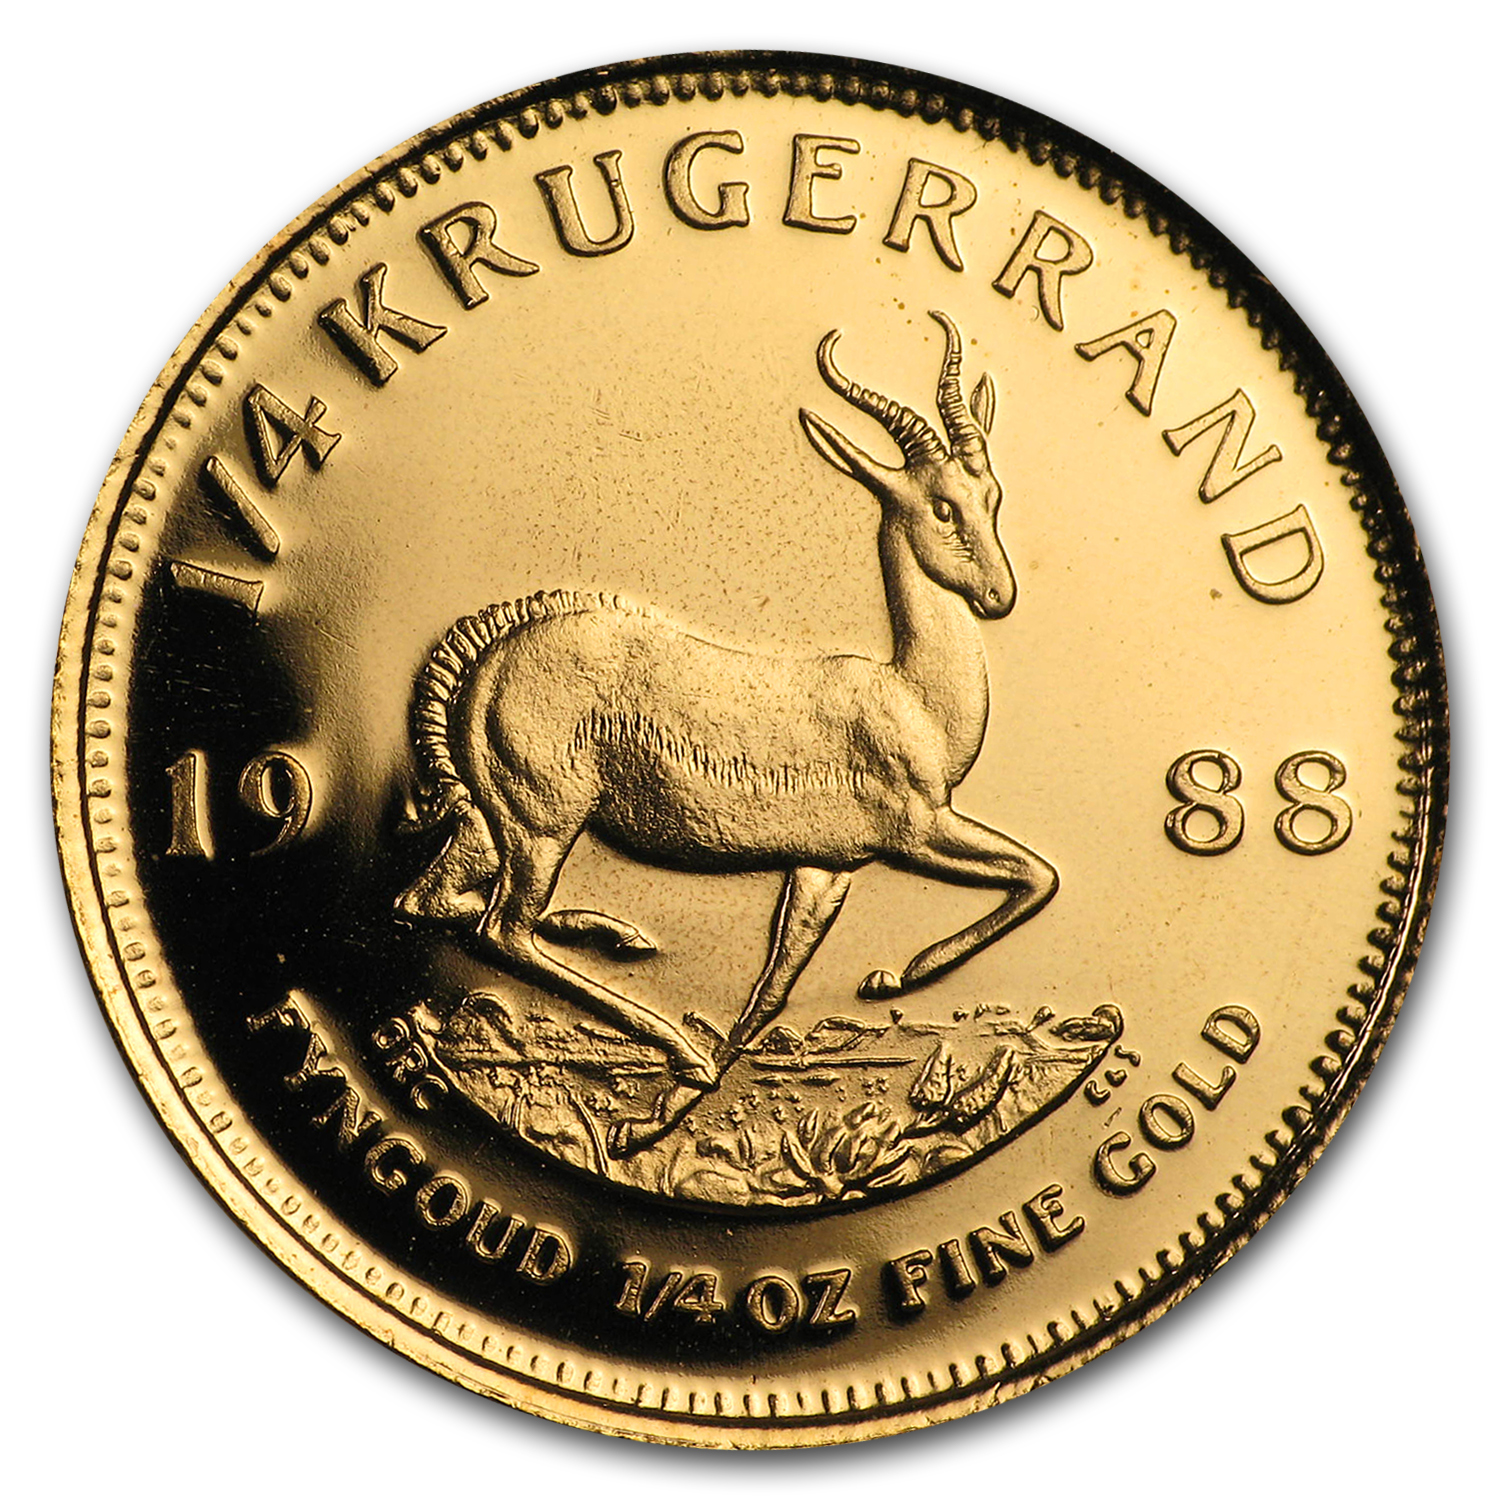 1988 1/4 oz Gold South African Krugerrand (Proof)